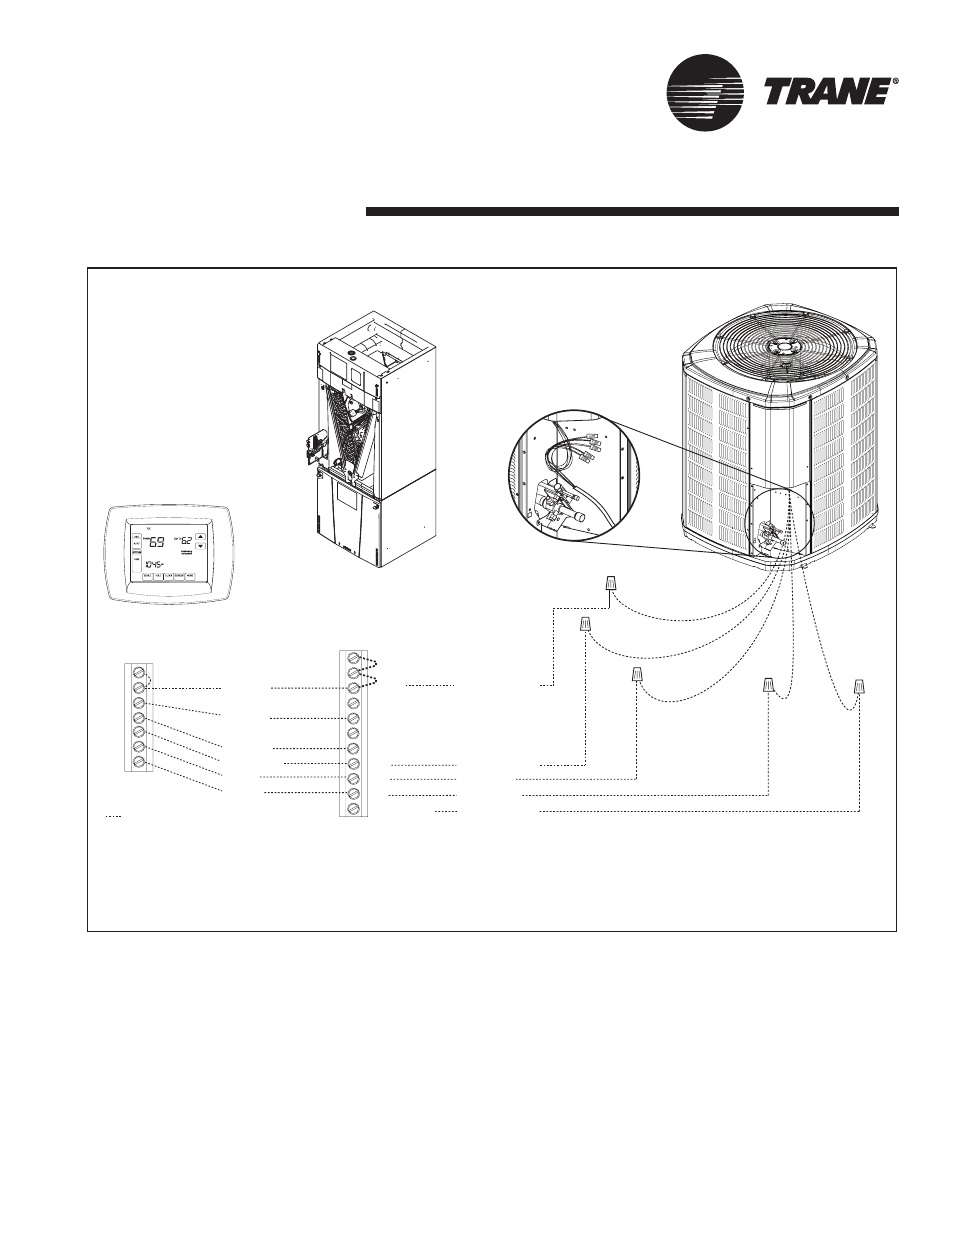 Trane outdoor Unit Service manual is also known as